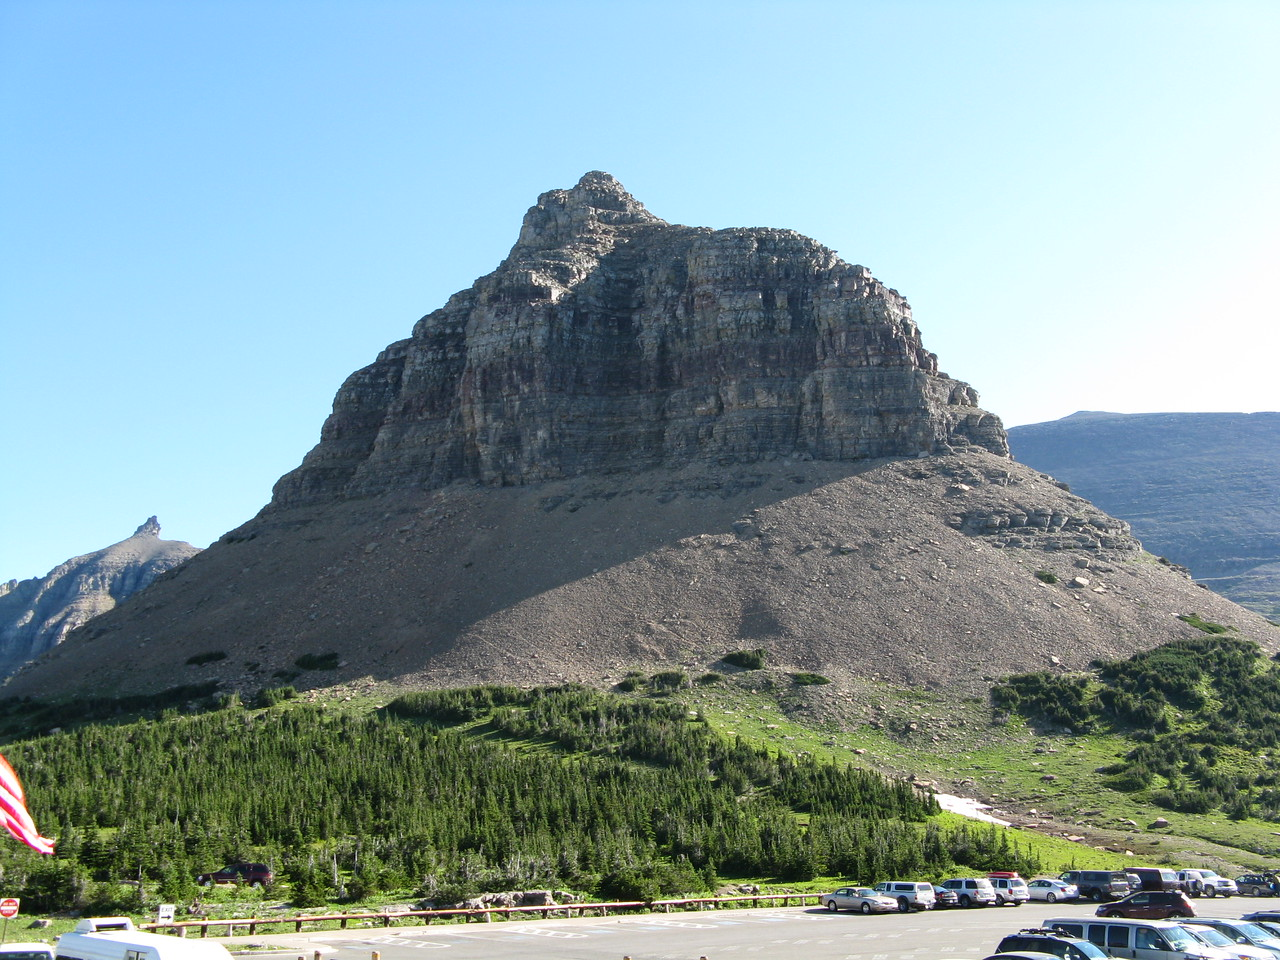 Looking across the Going-To-The-Sun Road and parking lot from the Visitor Center at the southern end of the Garden Wall at Logan Pass.